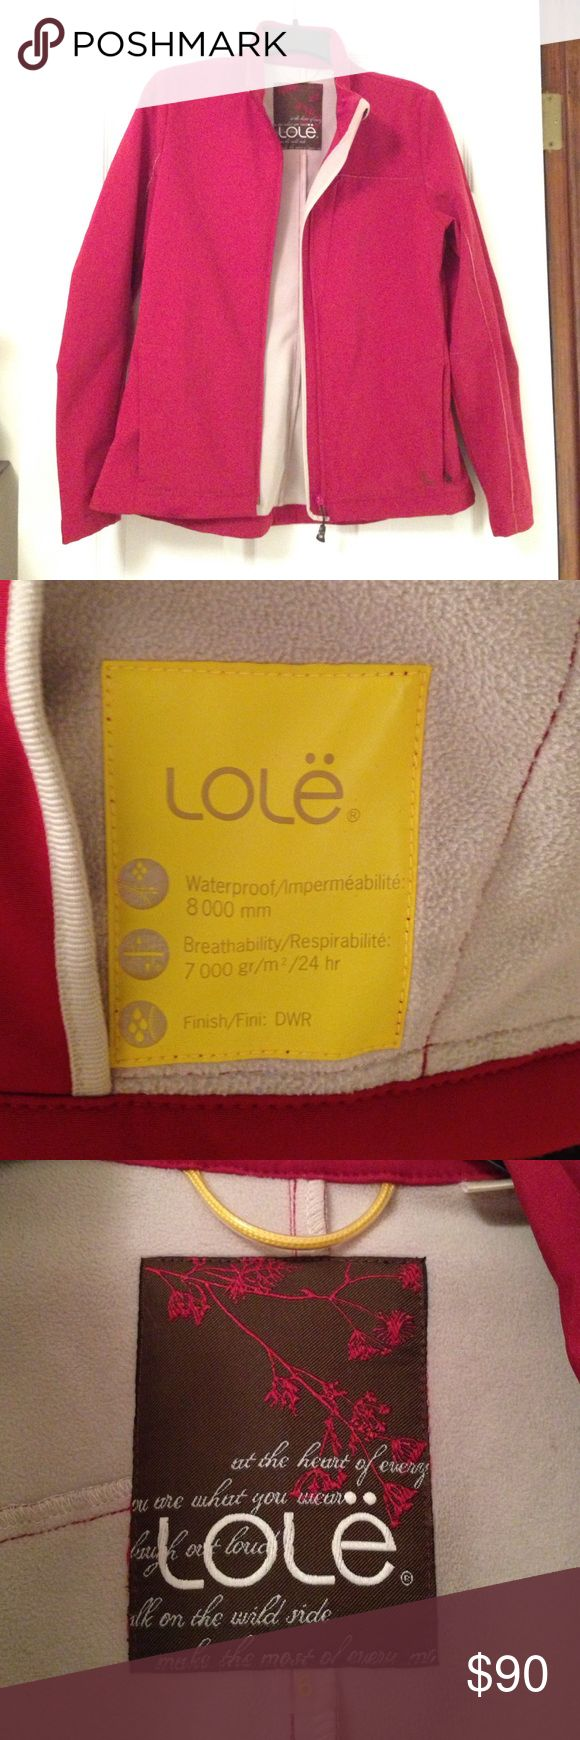 Lole waterproof lined jacket Dark pink Lole jacket in excellent condition. (Was only worn twice) Waterproof. Lining is similar to fleece. Very warm. Has traditional side pockets plus a vertical chest pocket, perfect for a phone. Also has 2 small openings for headphone cables. Lole Jackets & Coats Utility Jackets